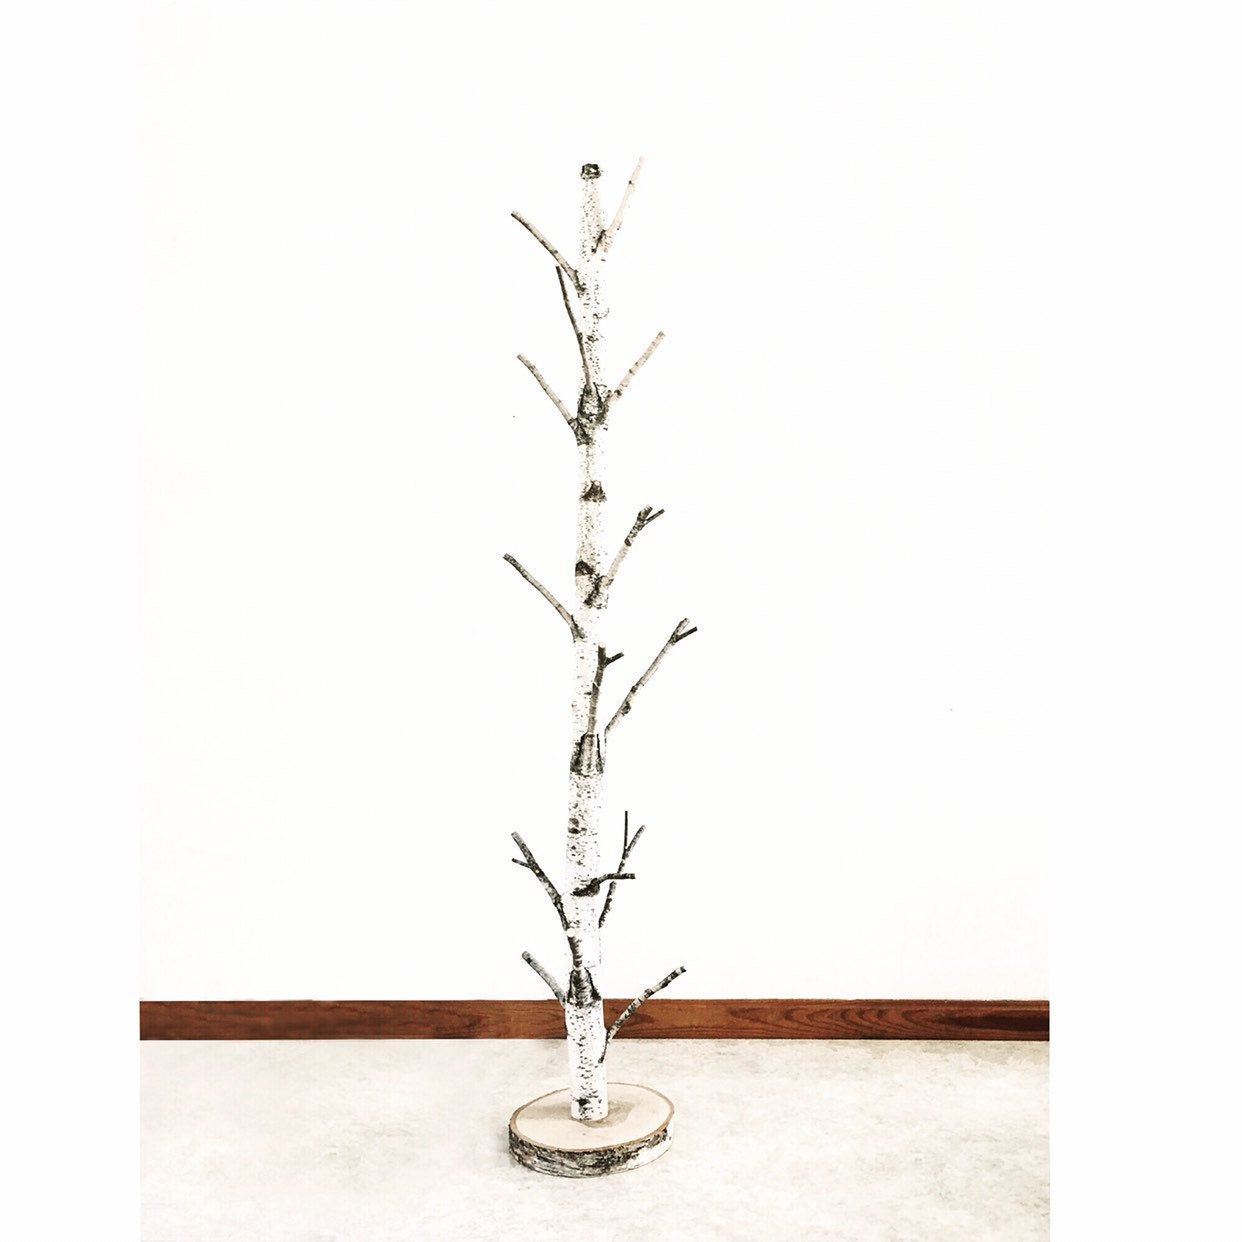 White Birch Tree Coat Rack With A Stand Birch Branch Birch Pole Birch Log Coat Rack Coat Tree Wood White Birch Trees Modern Rustic Decor Tree Coat Rack